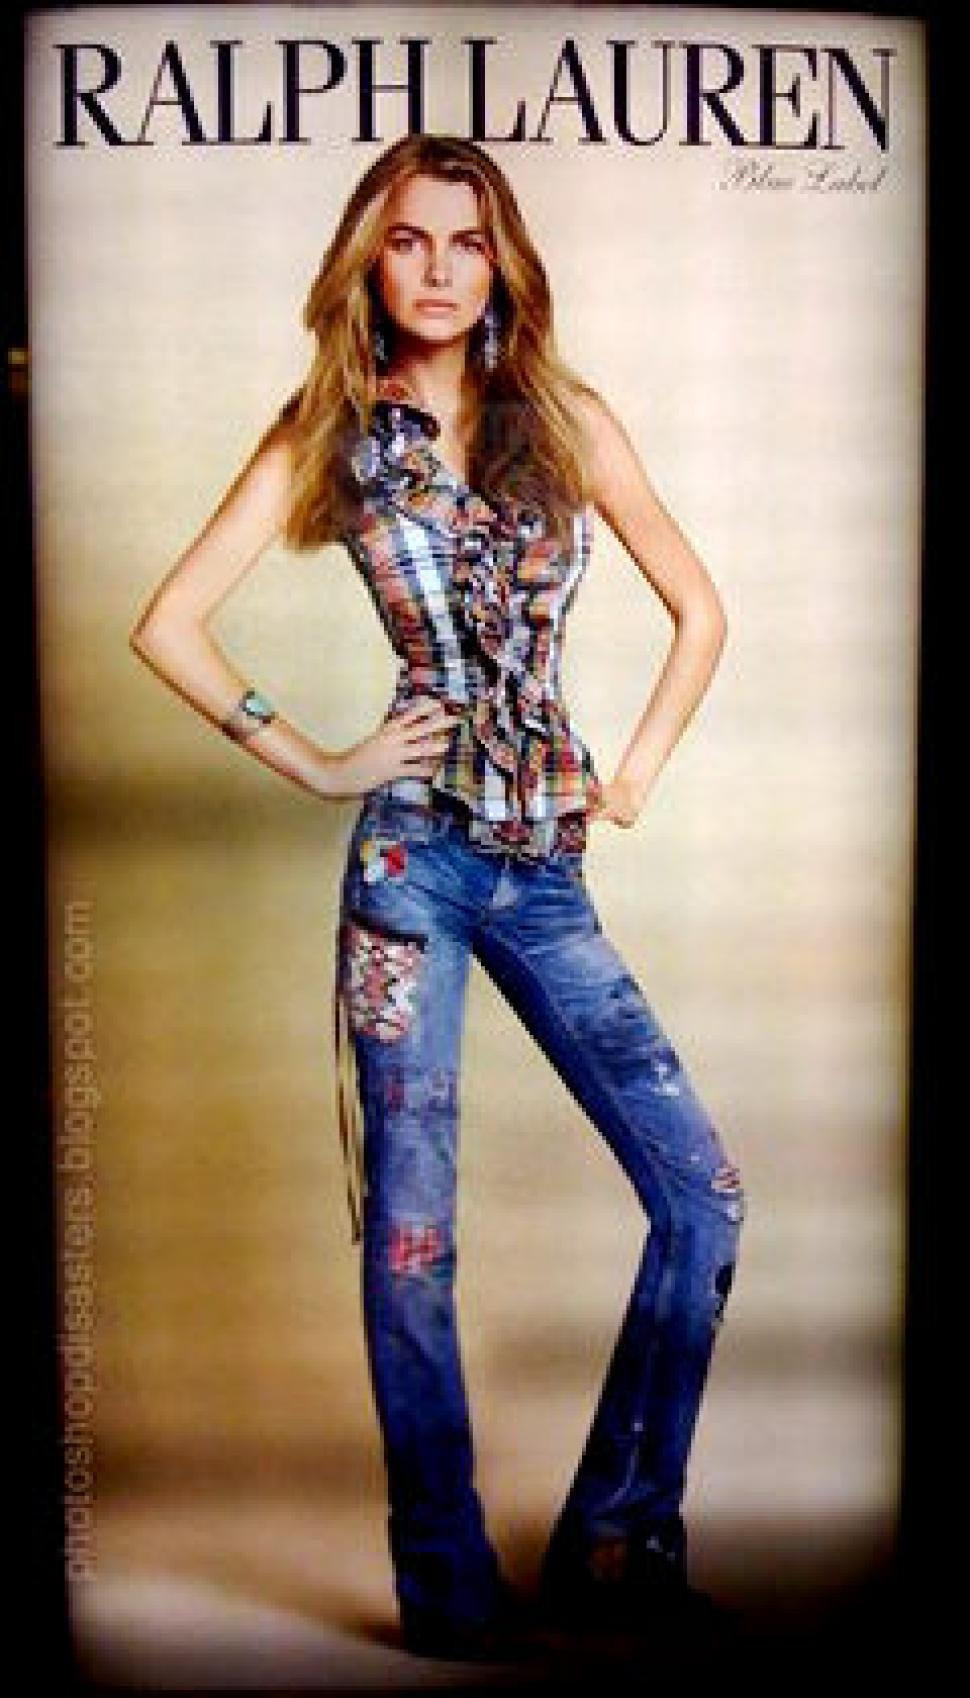 """This <a href=""""http://www.nydailynews.com/life-style/fashion/ralph-lauren-model-filippa-hamilton-fired-fat-article-1.381093"""" target=""""_blank"""">Ralph Lauren</a> advertisement appeared in a department store in Japan featuring model Filippa Hamilton-Palmstierna."""